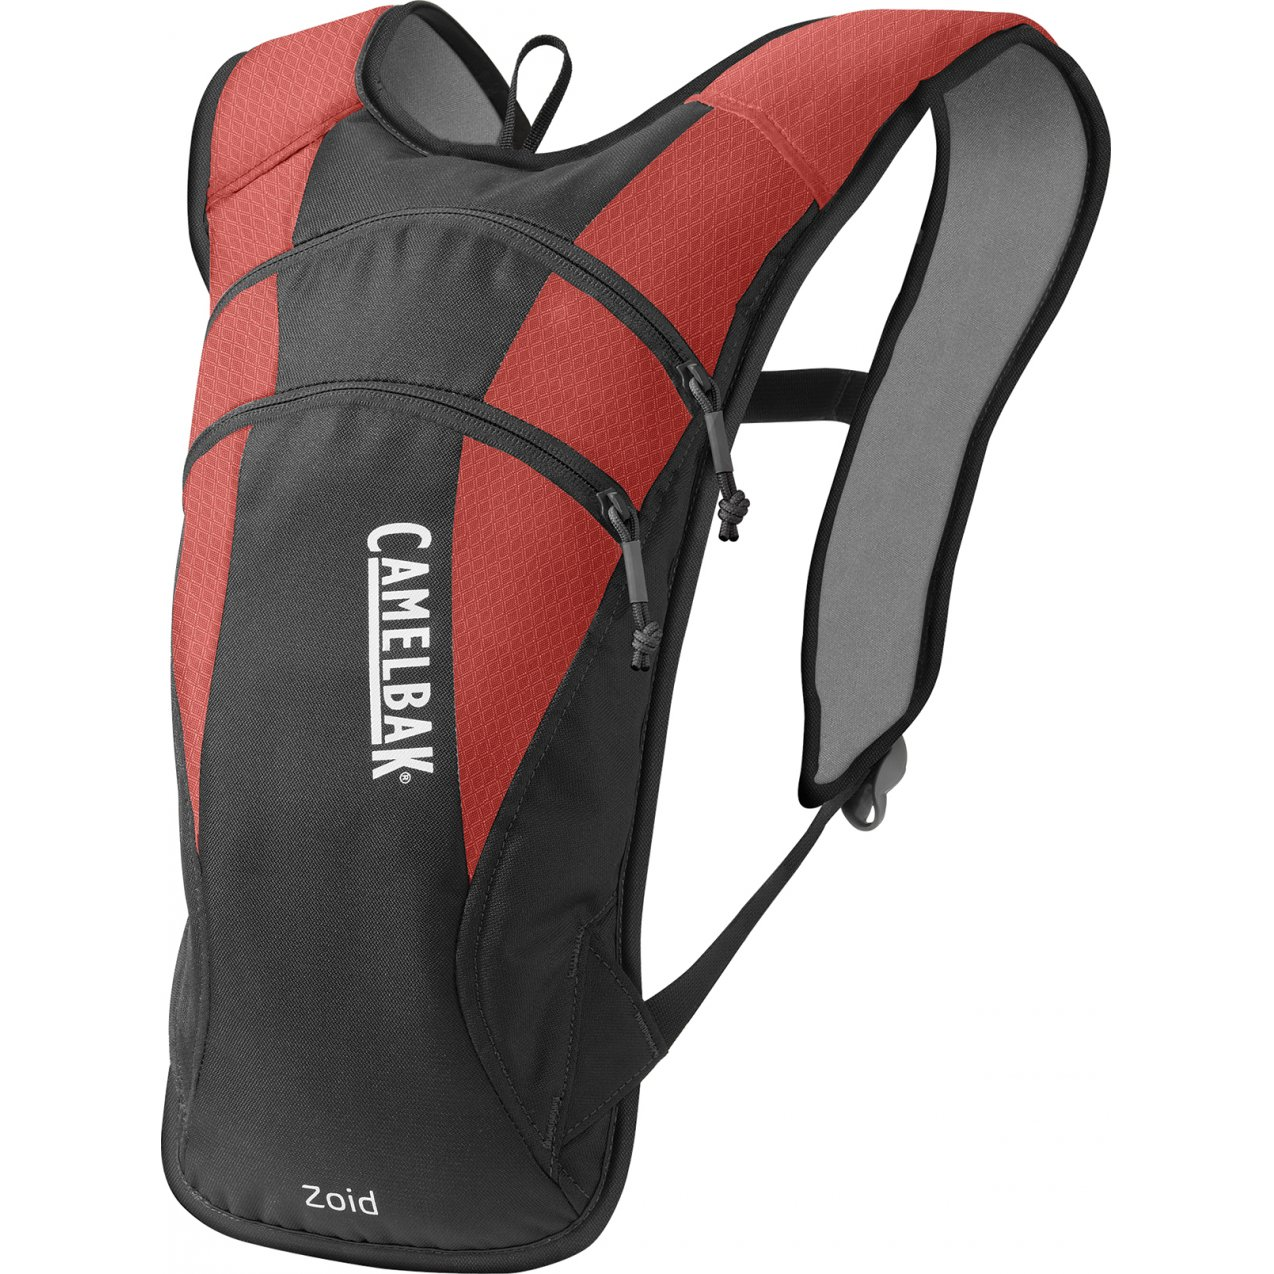 Camelbak Zoid - Chili Pepper